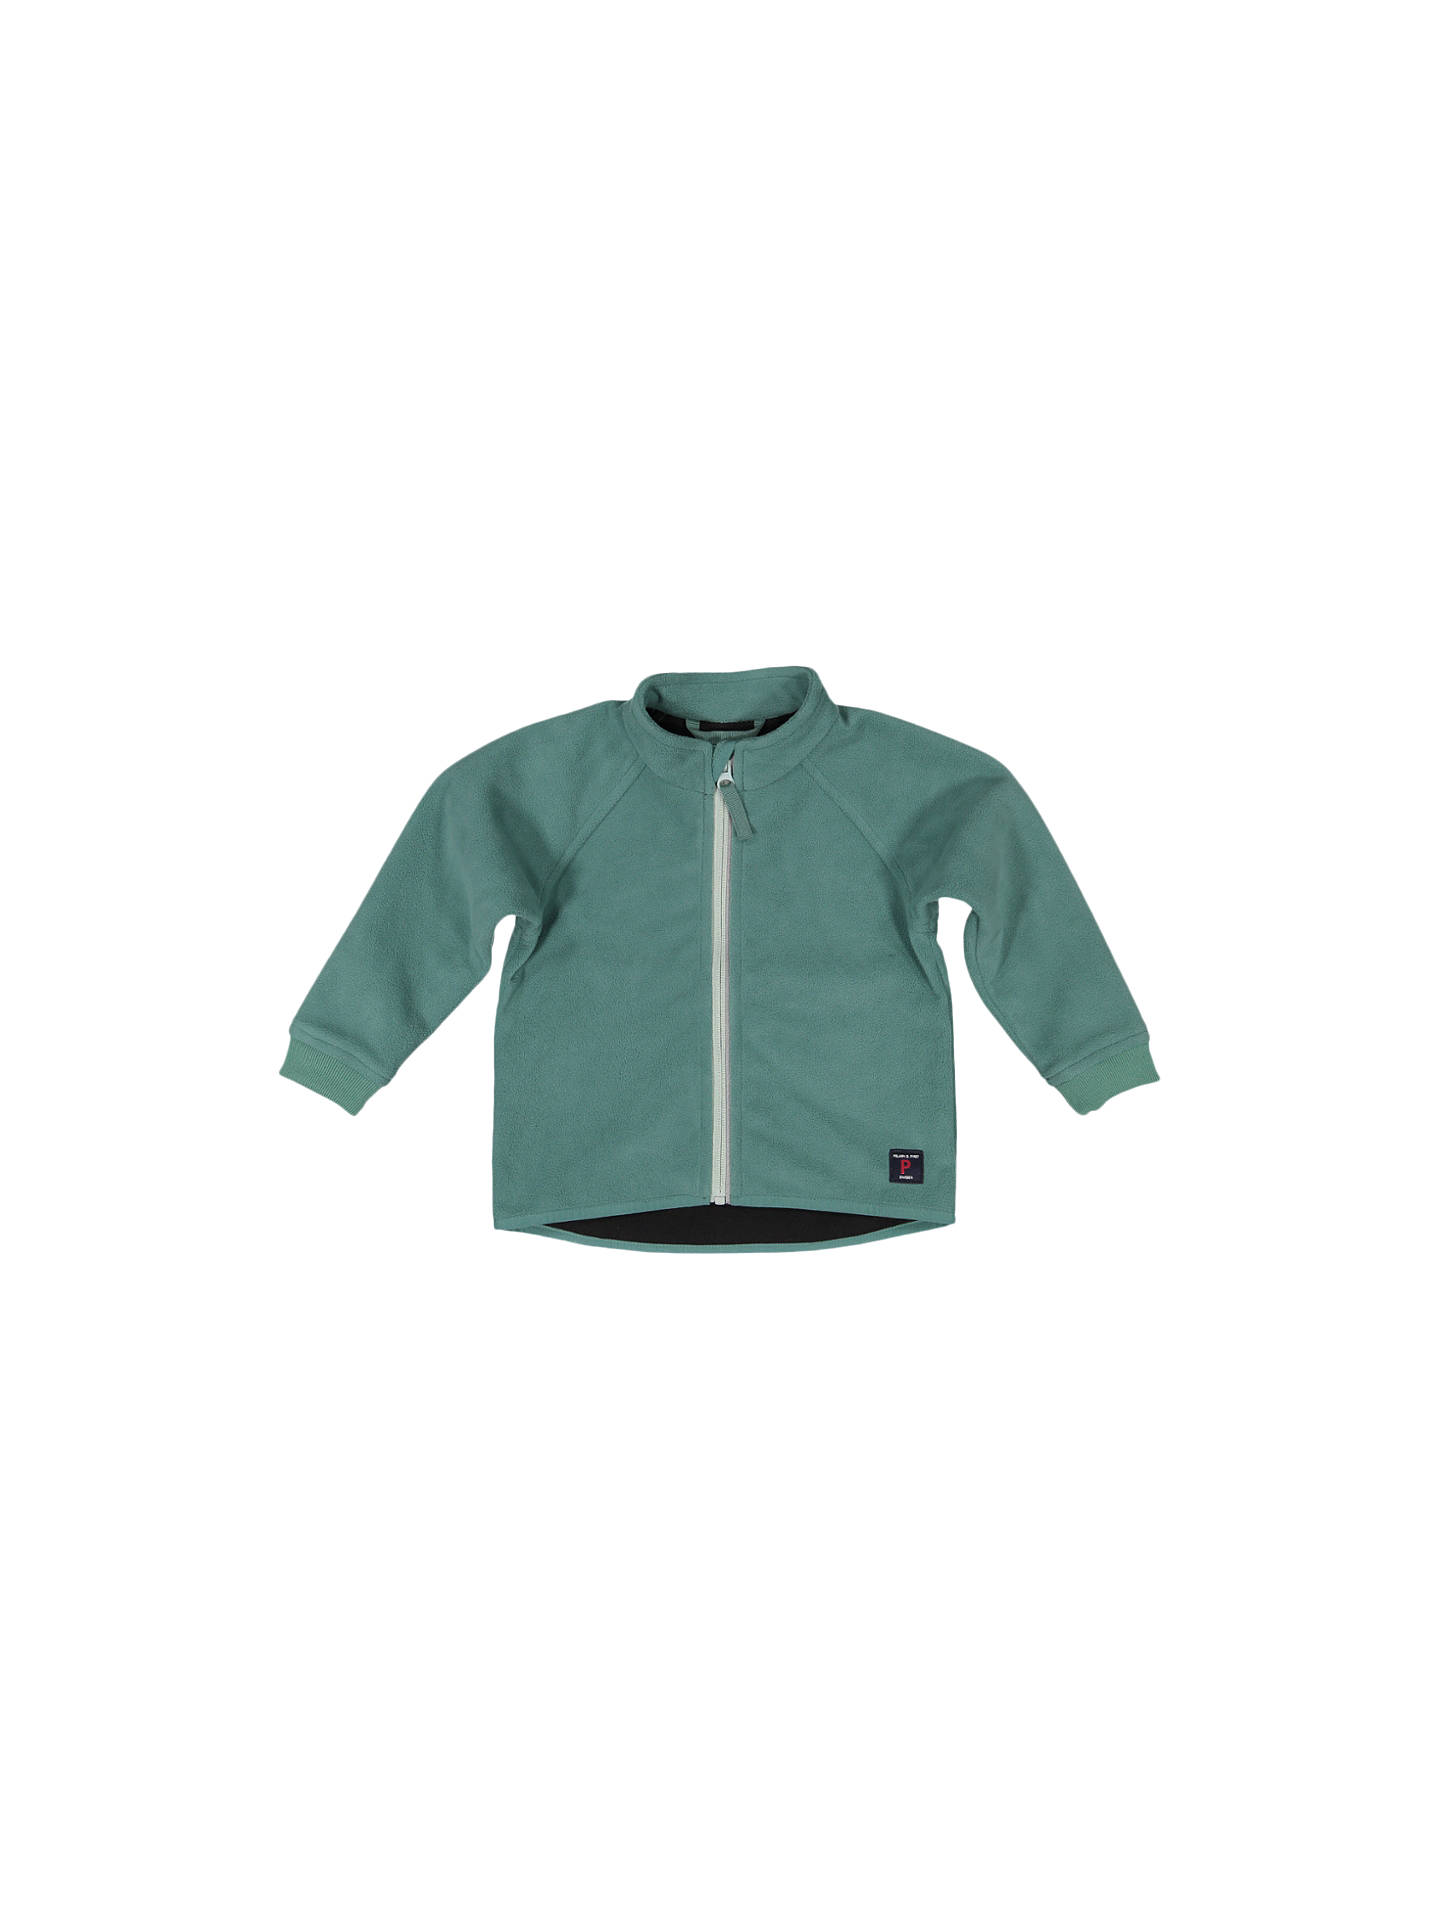 e925cab4f Polarn O. Pyret Baby Fleece Jacket at John Lewis   Partners